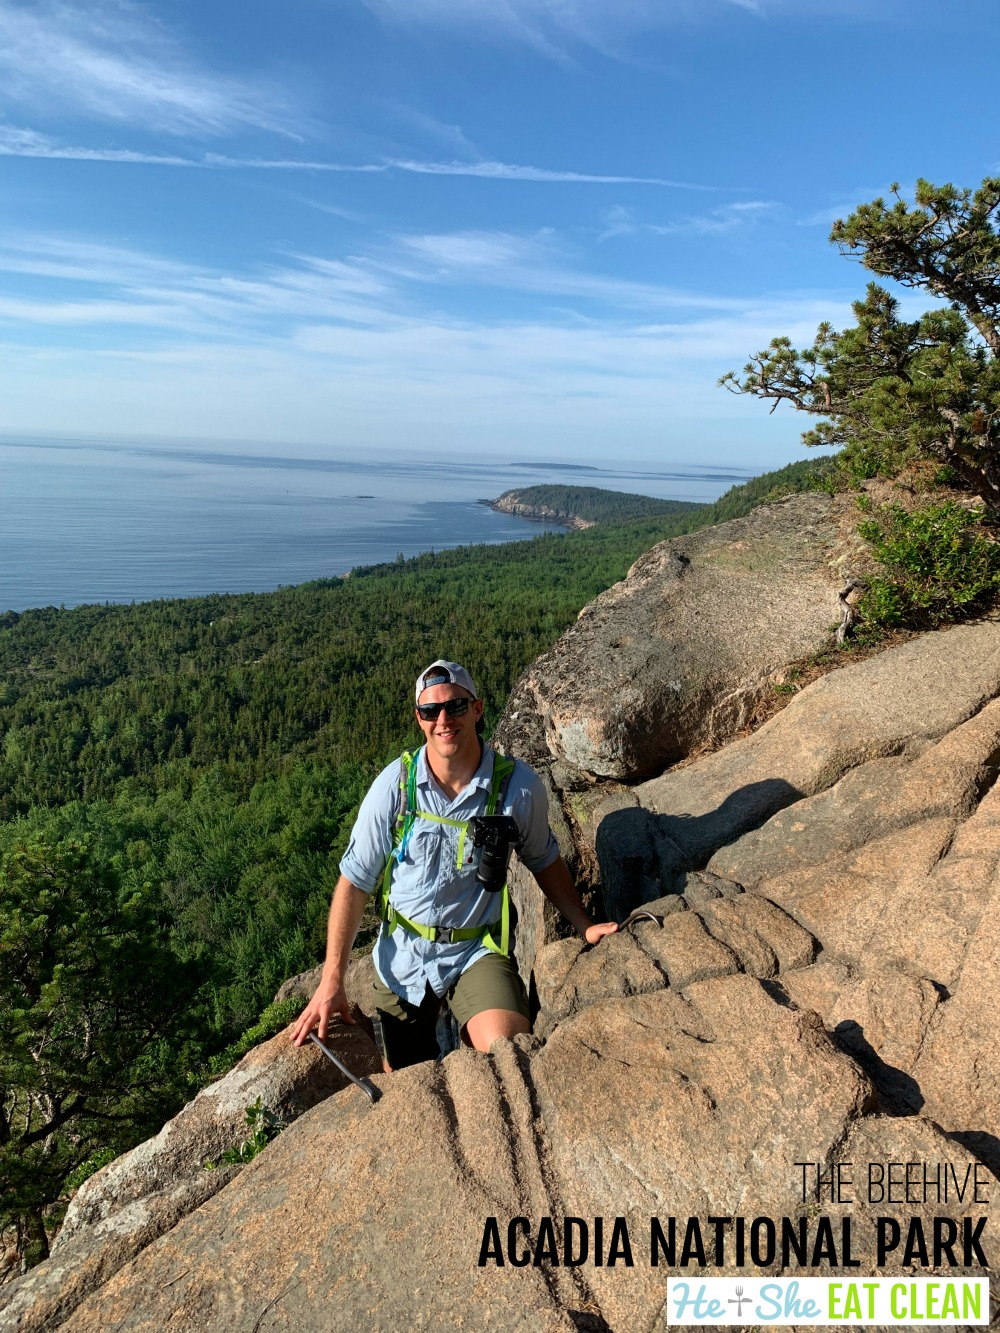 male hiker on the Beehive trail in Acadia National Park in Maine with the ocean and trees in the background